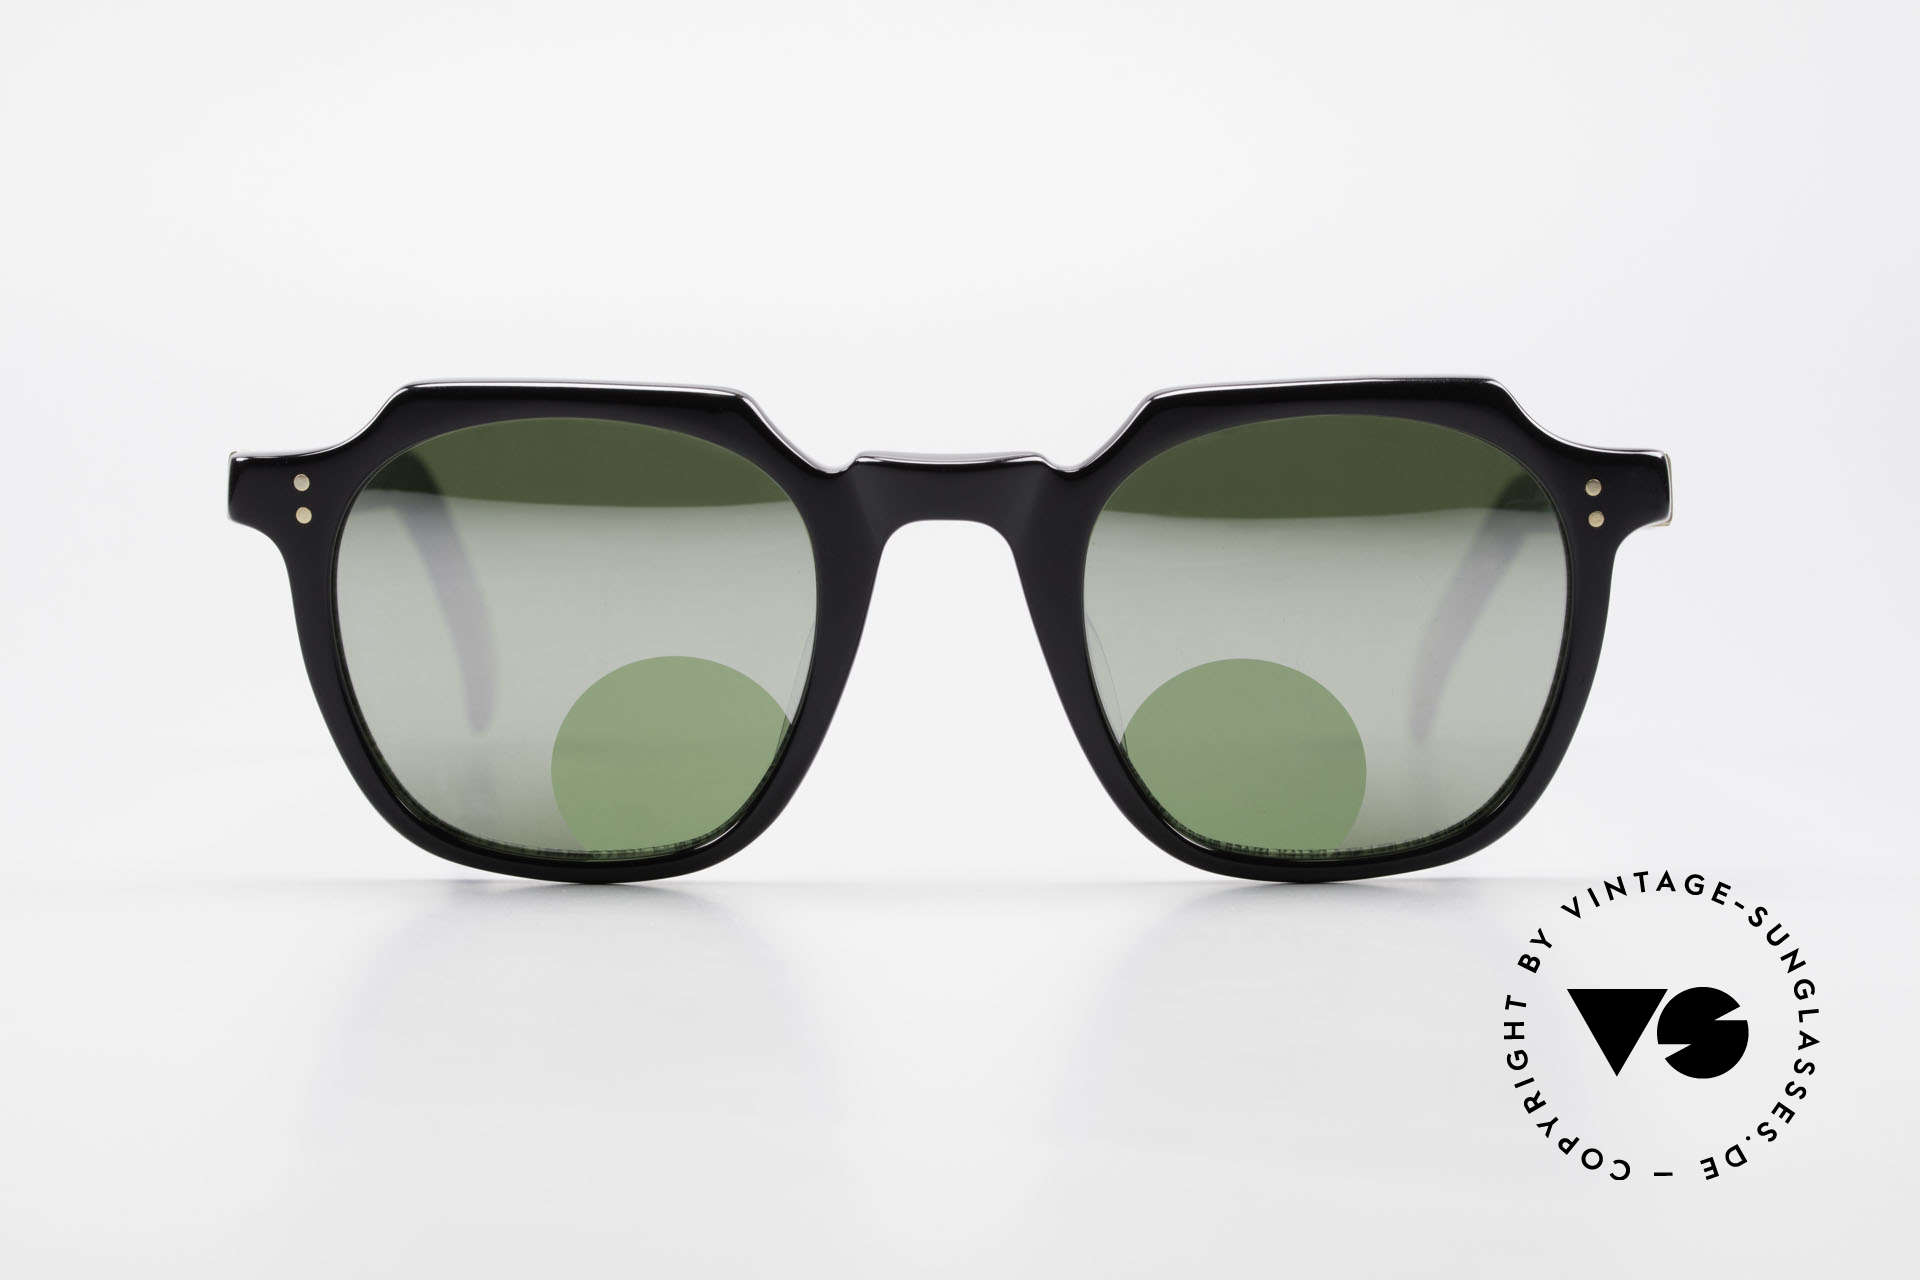 Jean Paul Gaultier 58-0071 Mirrored Lenses With Peephole, mirrored lenses with 'peephole' for reading purposes, Made for Men and Women